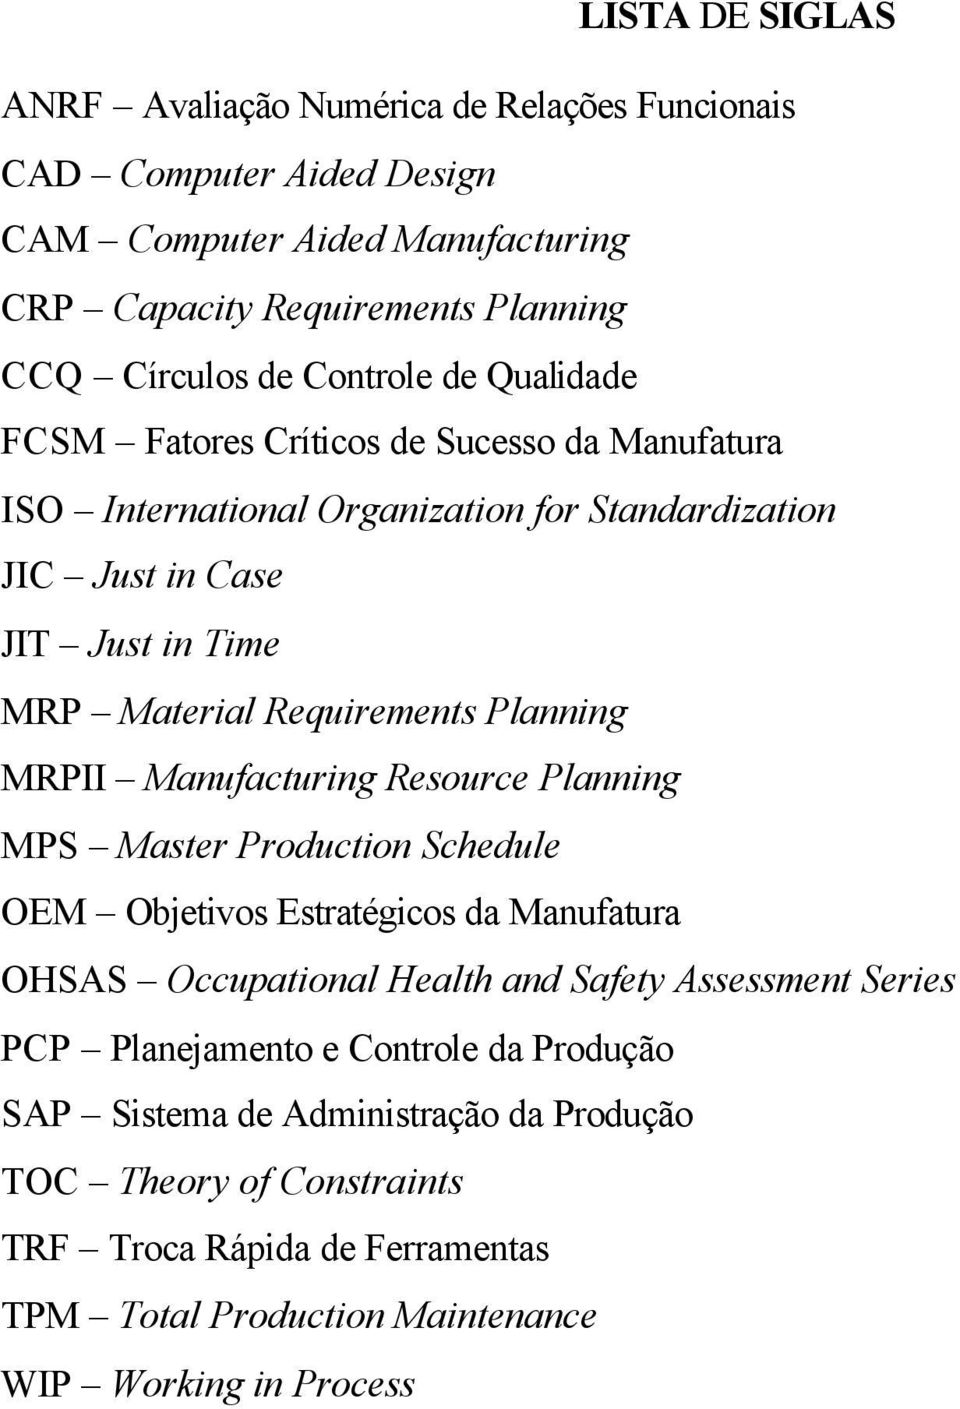 Planning MRPII Manufacturing Resource Planning MPS Master Production Schedule OEM Objetivos Estratégicos da Manufatura OHSAS Occupational Health and Safety Assessment Series PCP